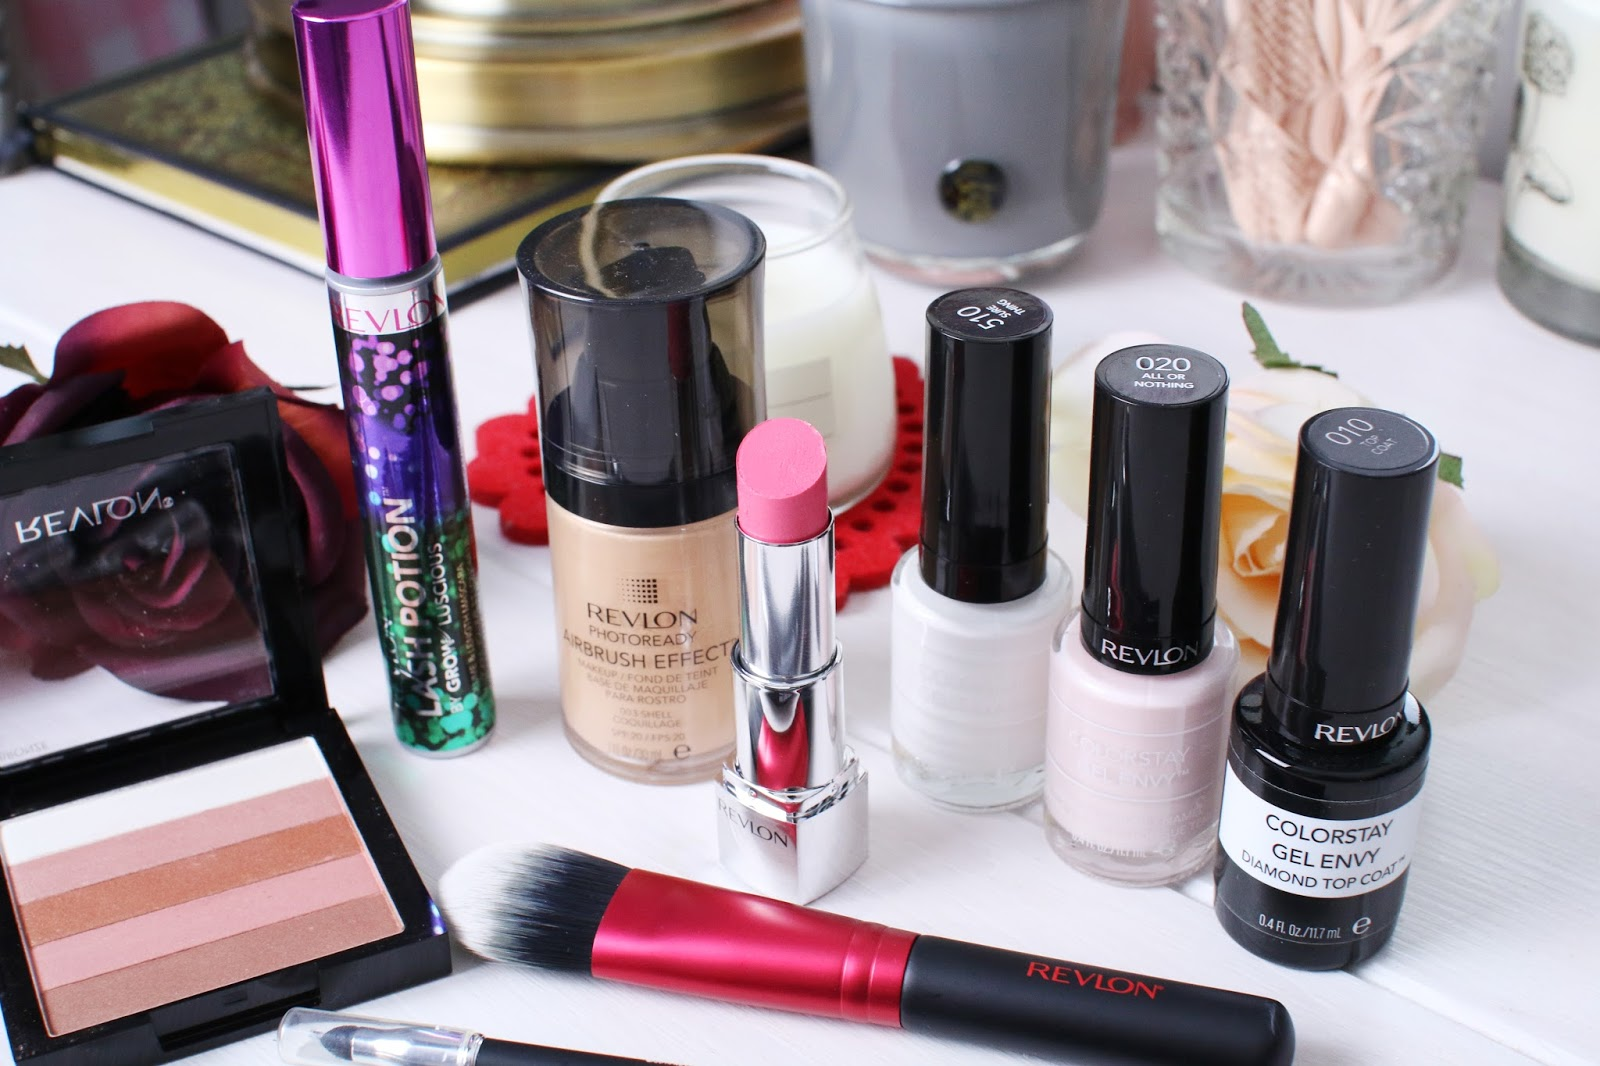 Discovering Revlon: A Full Face of First Impressions